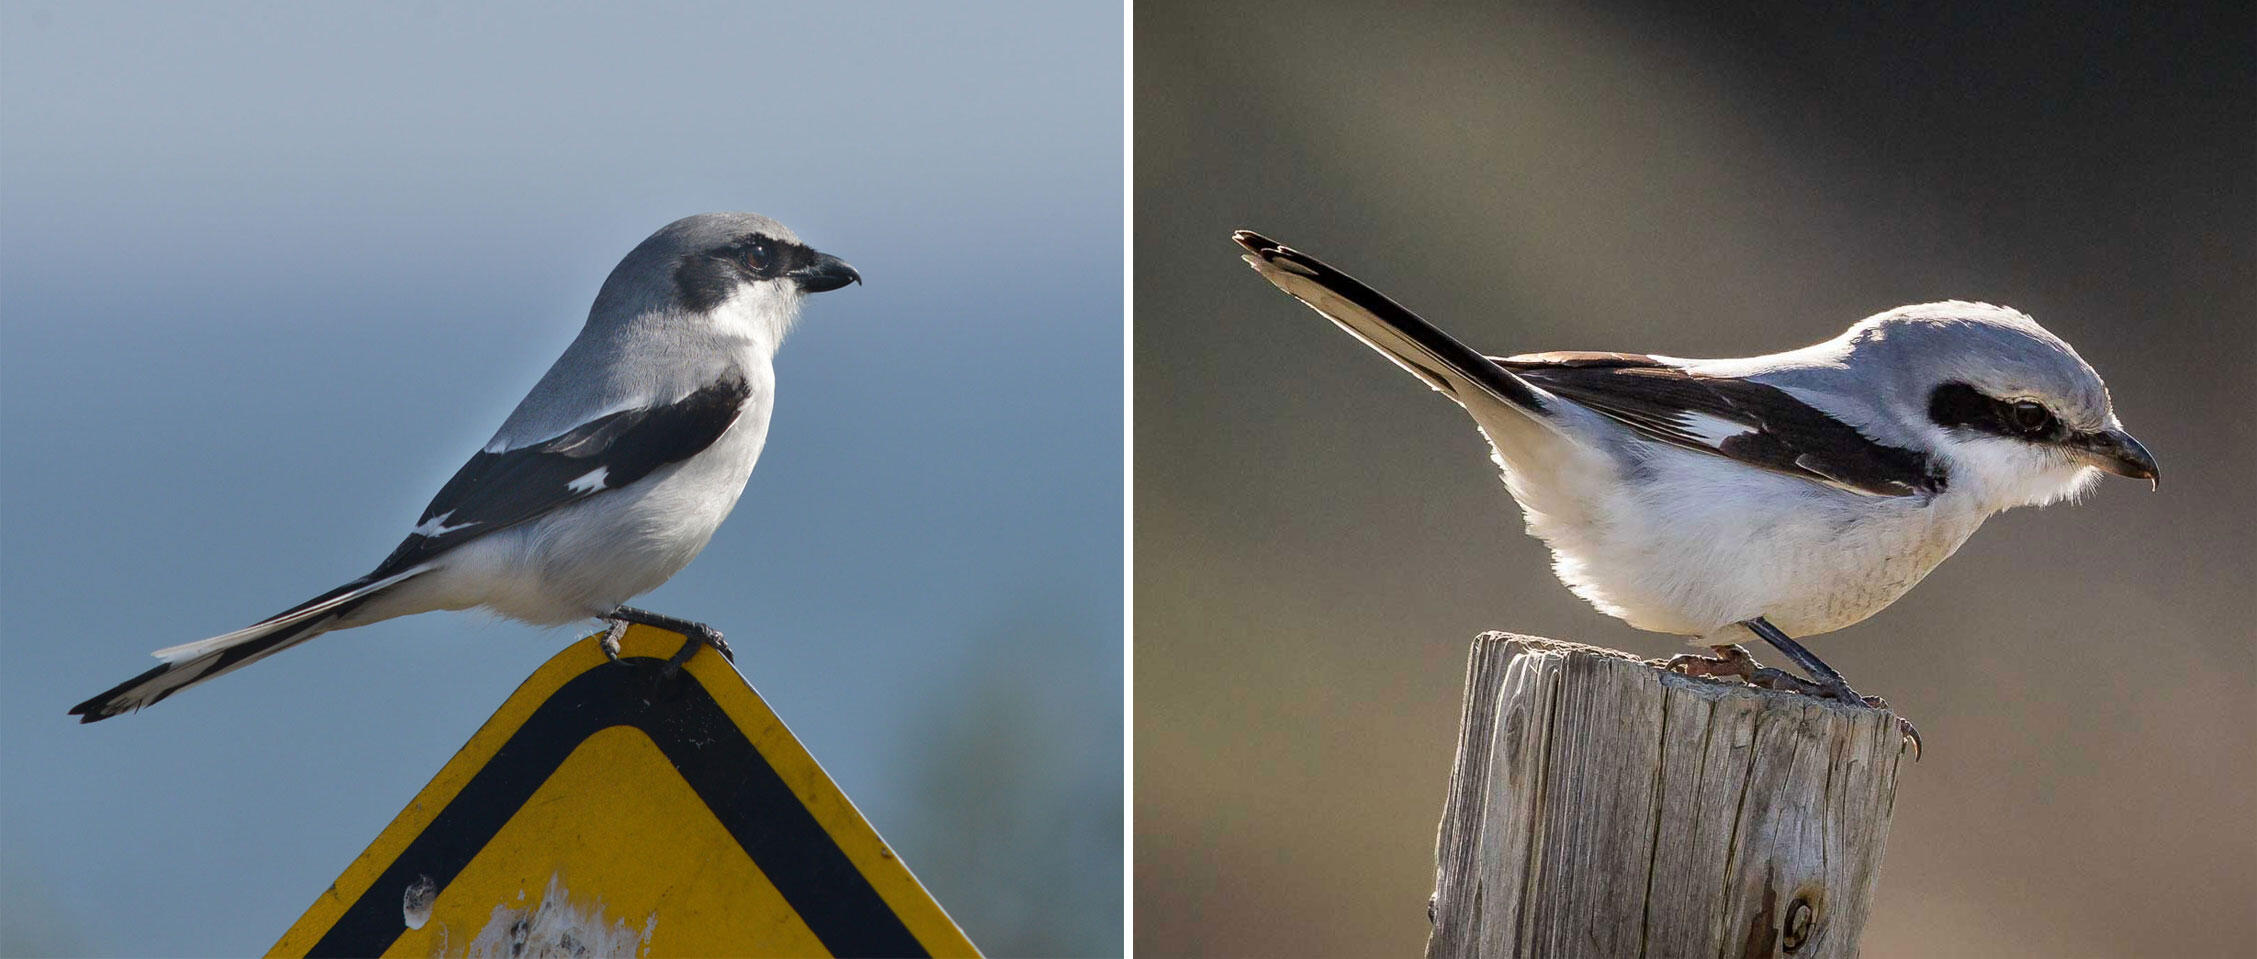 From left to right: Loggerhead Shrike and Northern Shrike. Don't let their adorable masked faces fool you. Photos: Deborah Bifulco/Great Backyard Bird Count,  Smudge 9000/Flickr CC (CC BY-SA 2.0)